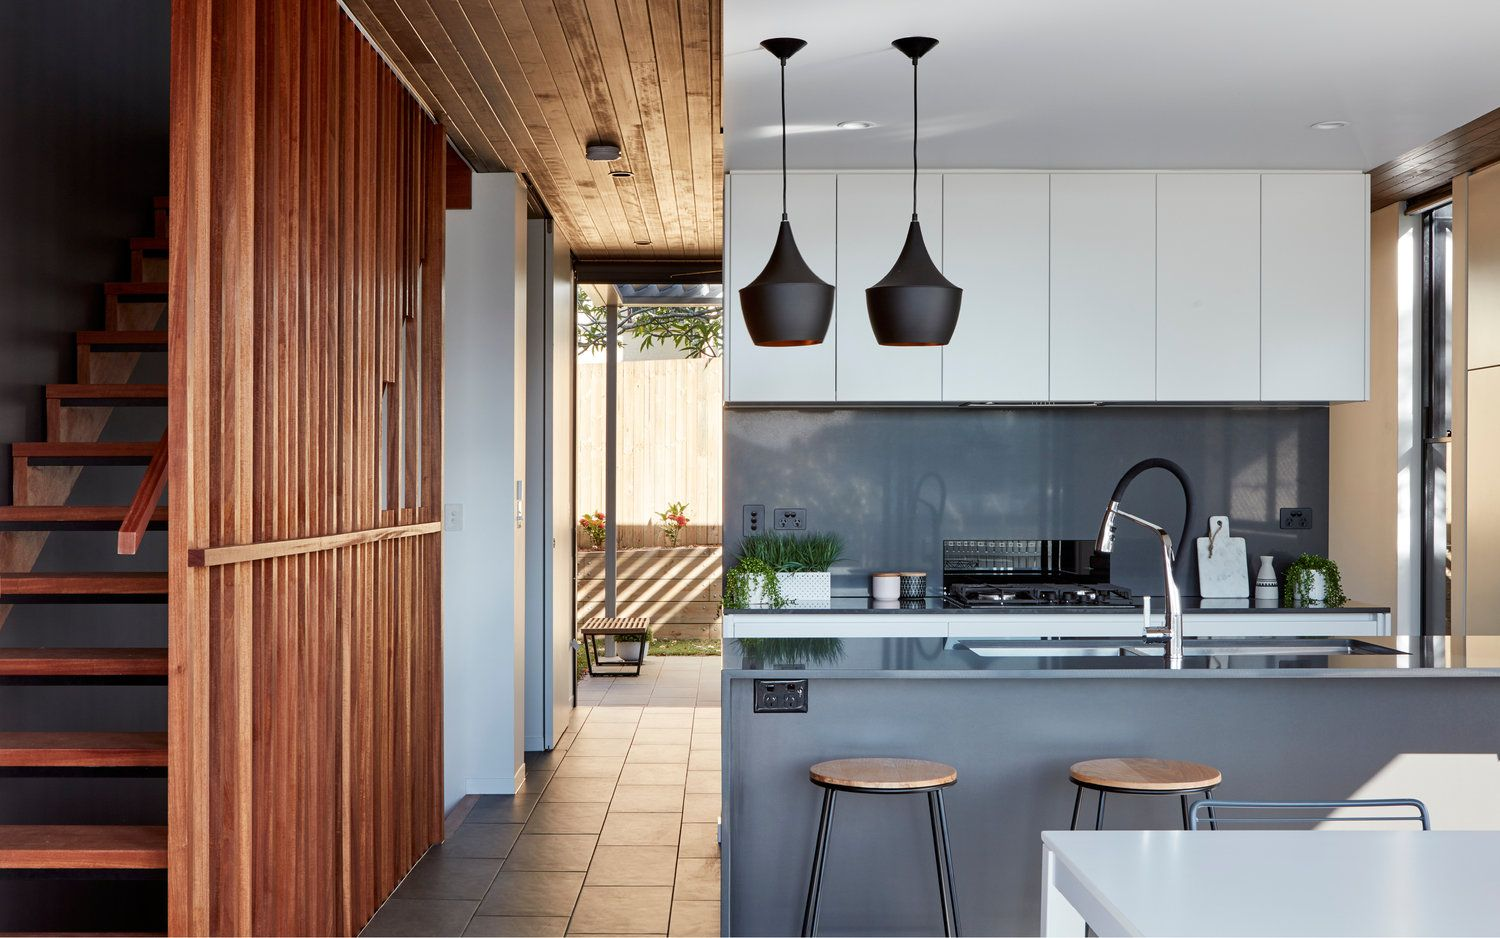 Shades of grey with white joinery are complimented by stained timber